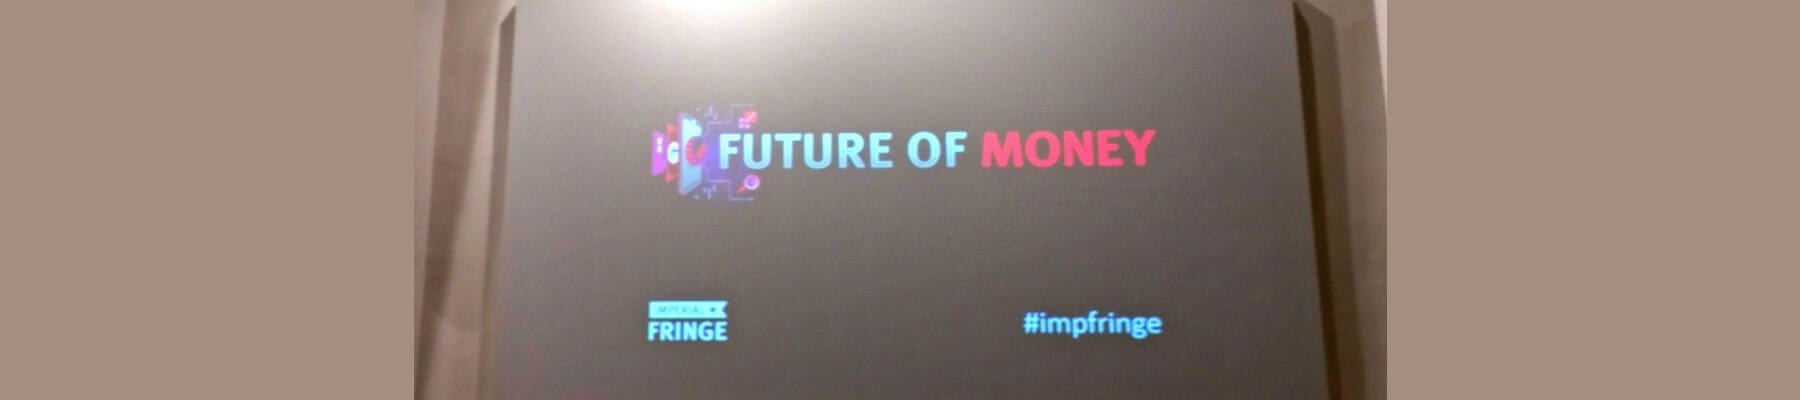 Imperial College Future of Money debate